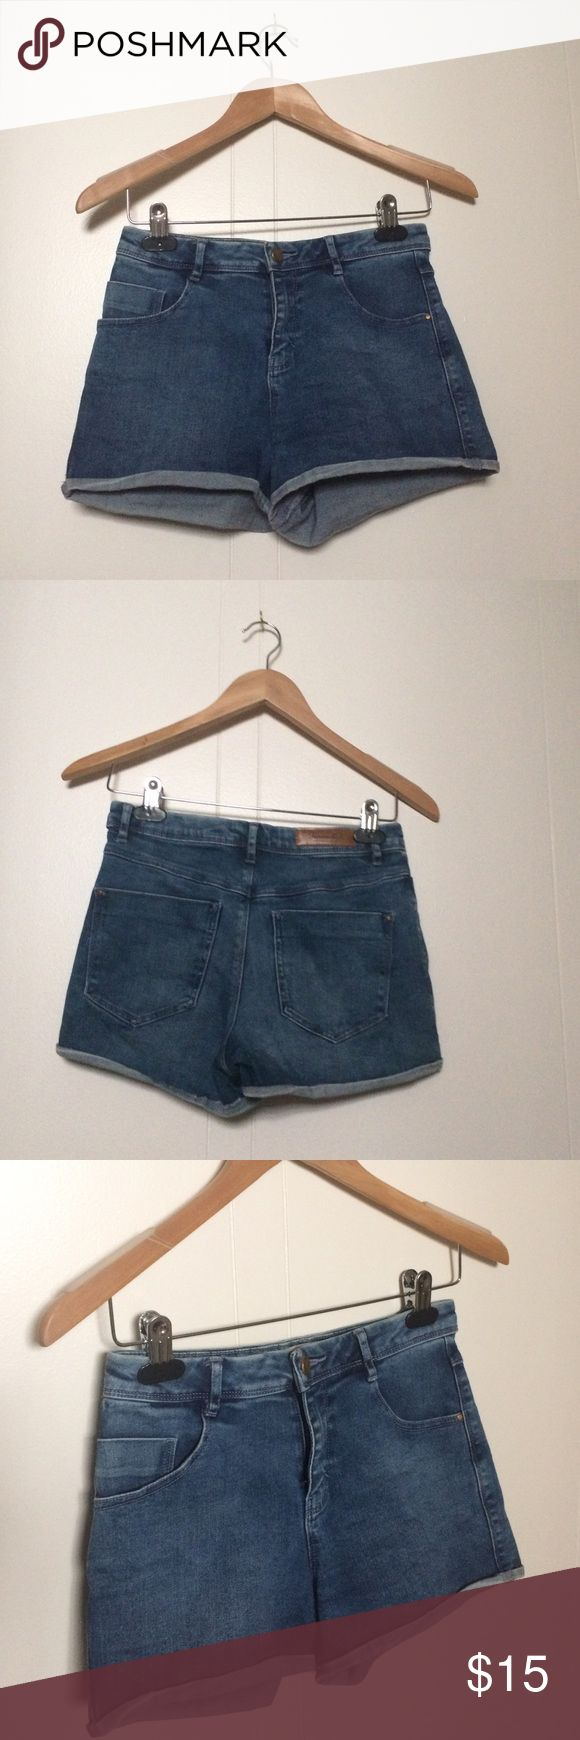 Zara Jean shorts These shorts are in good condition. I have worn these a lot because they are the perfect high waisted shorts. The denim fabric is super soft. I would love to still wear these but they're too small on me now Zara Shorts Jean Shorts